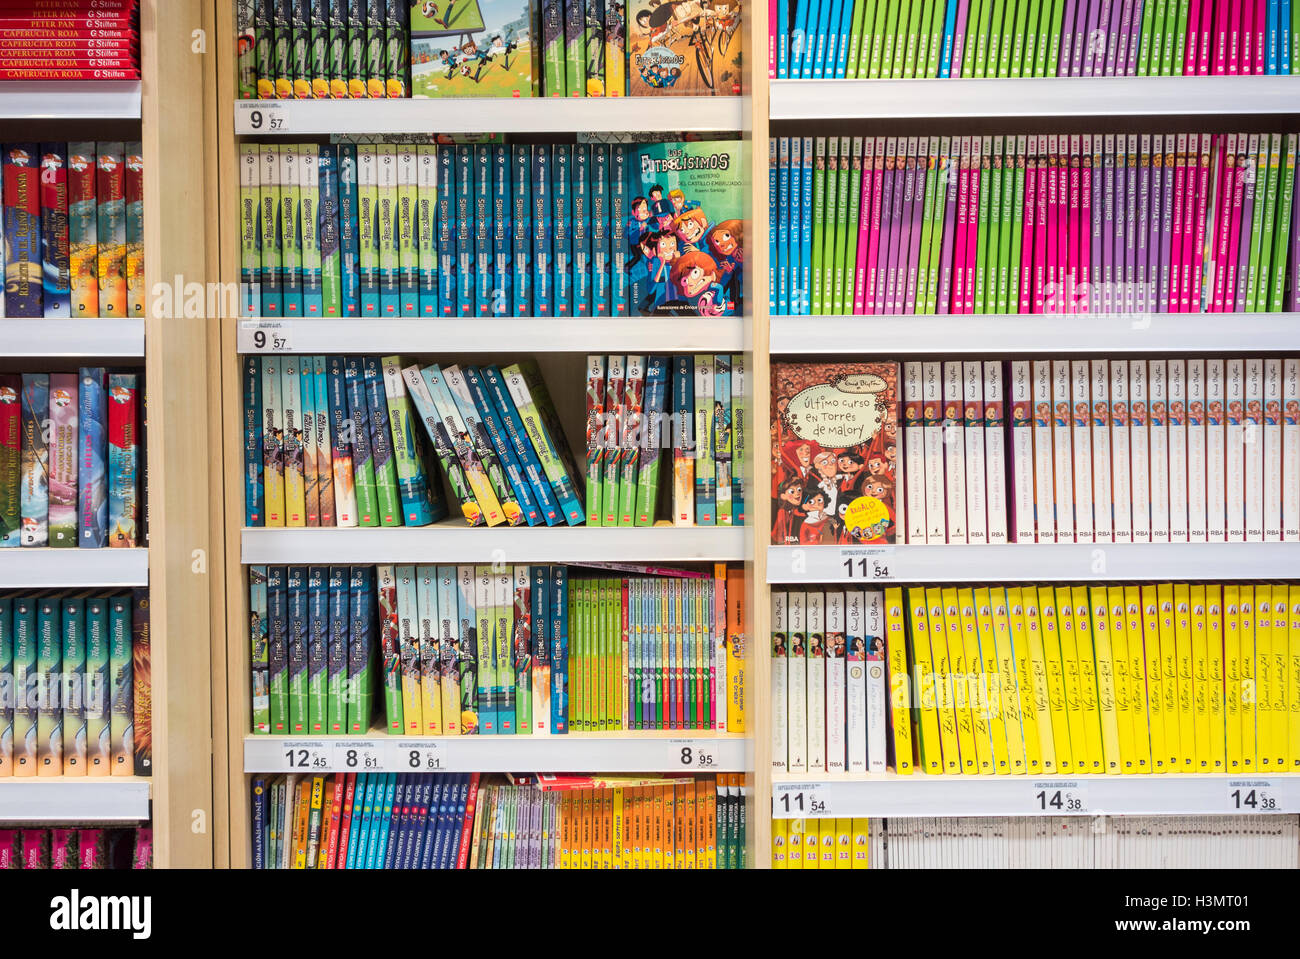 Libros Carrefour Carrefour Store Stock Photos Carrefour Store Stock Images Page